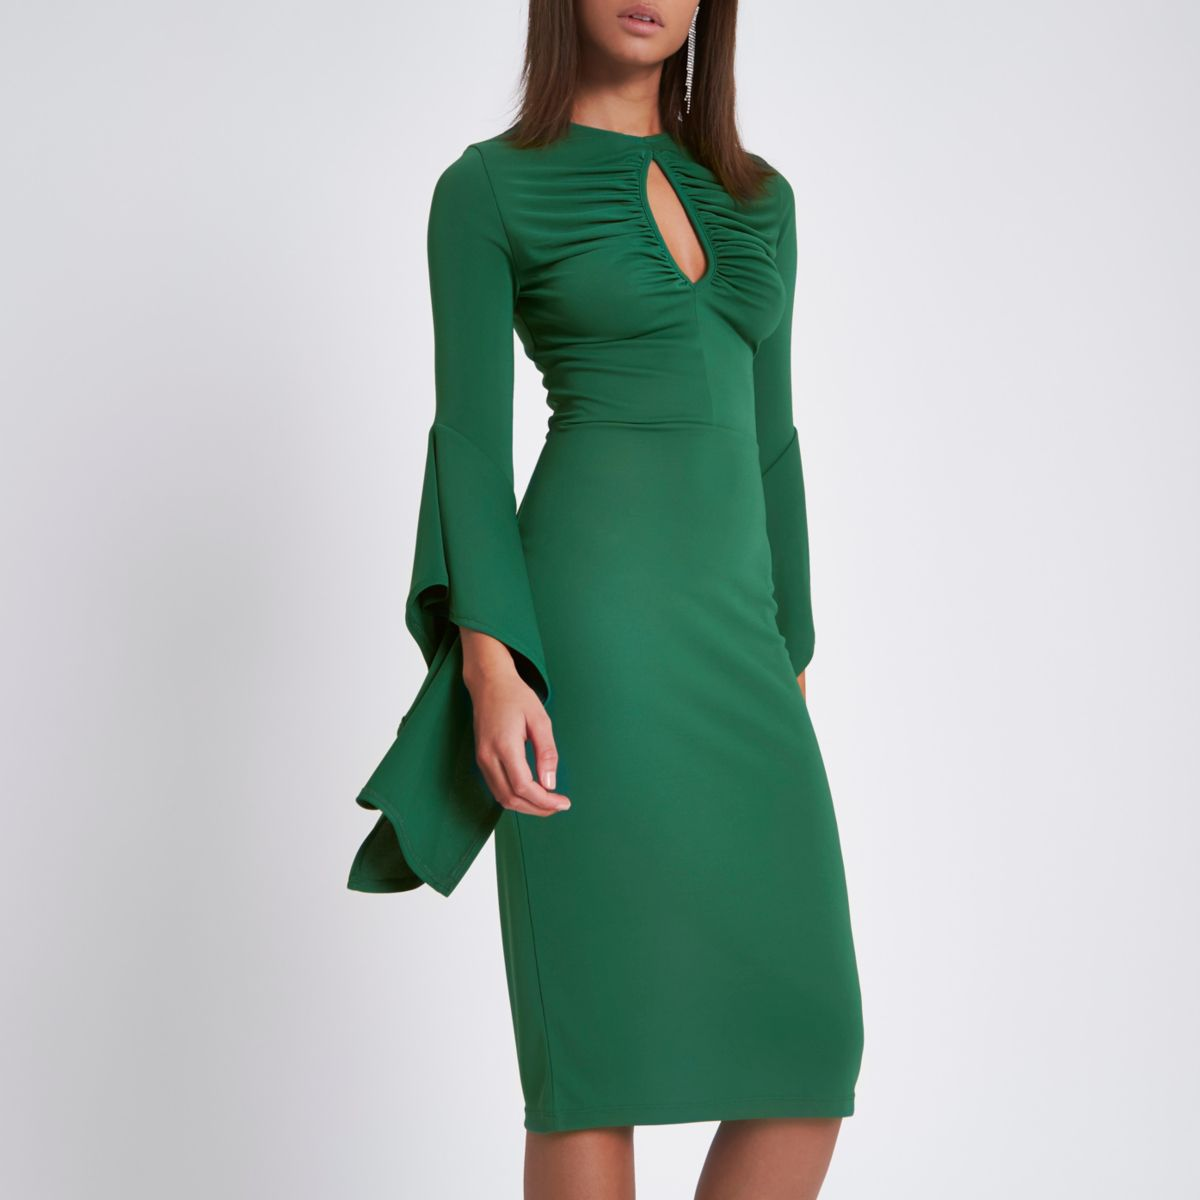 Green ruched keyhole cut out bodycon dress